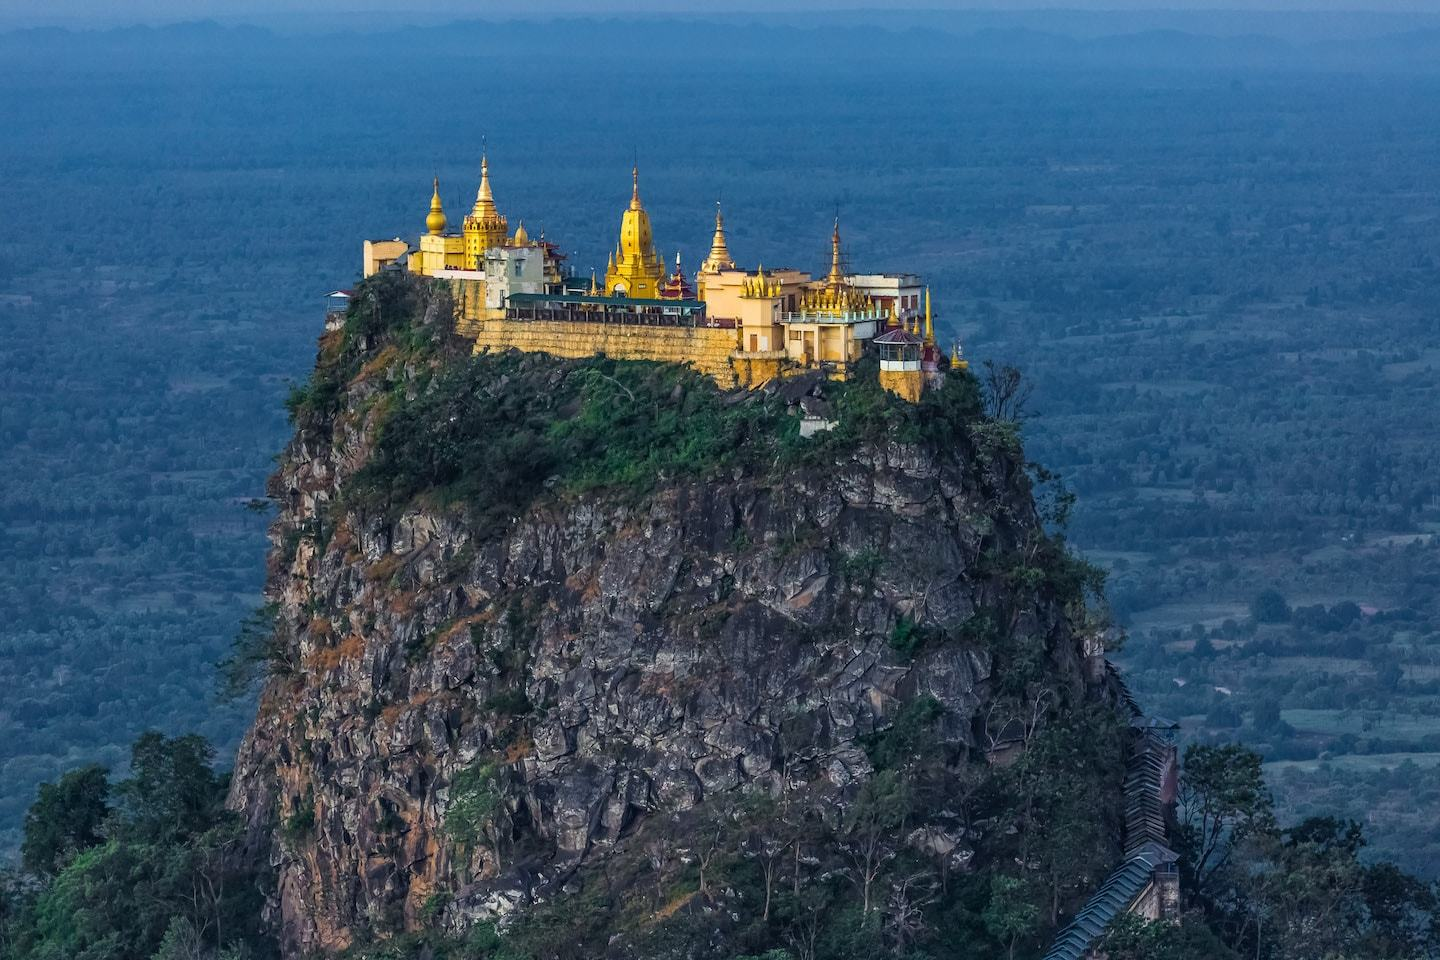 mount popa monastery on top of volcano myanmar